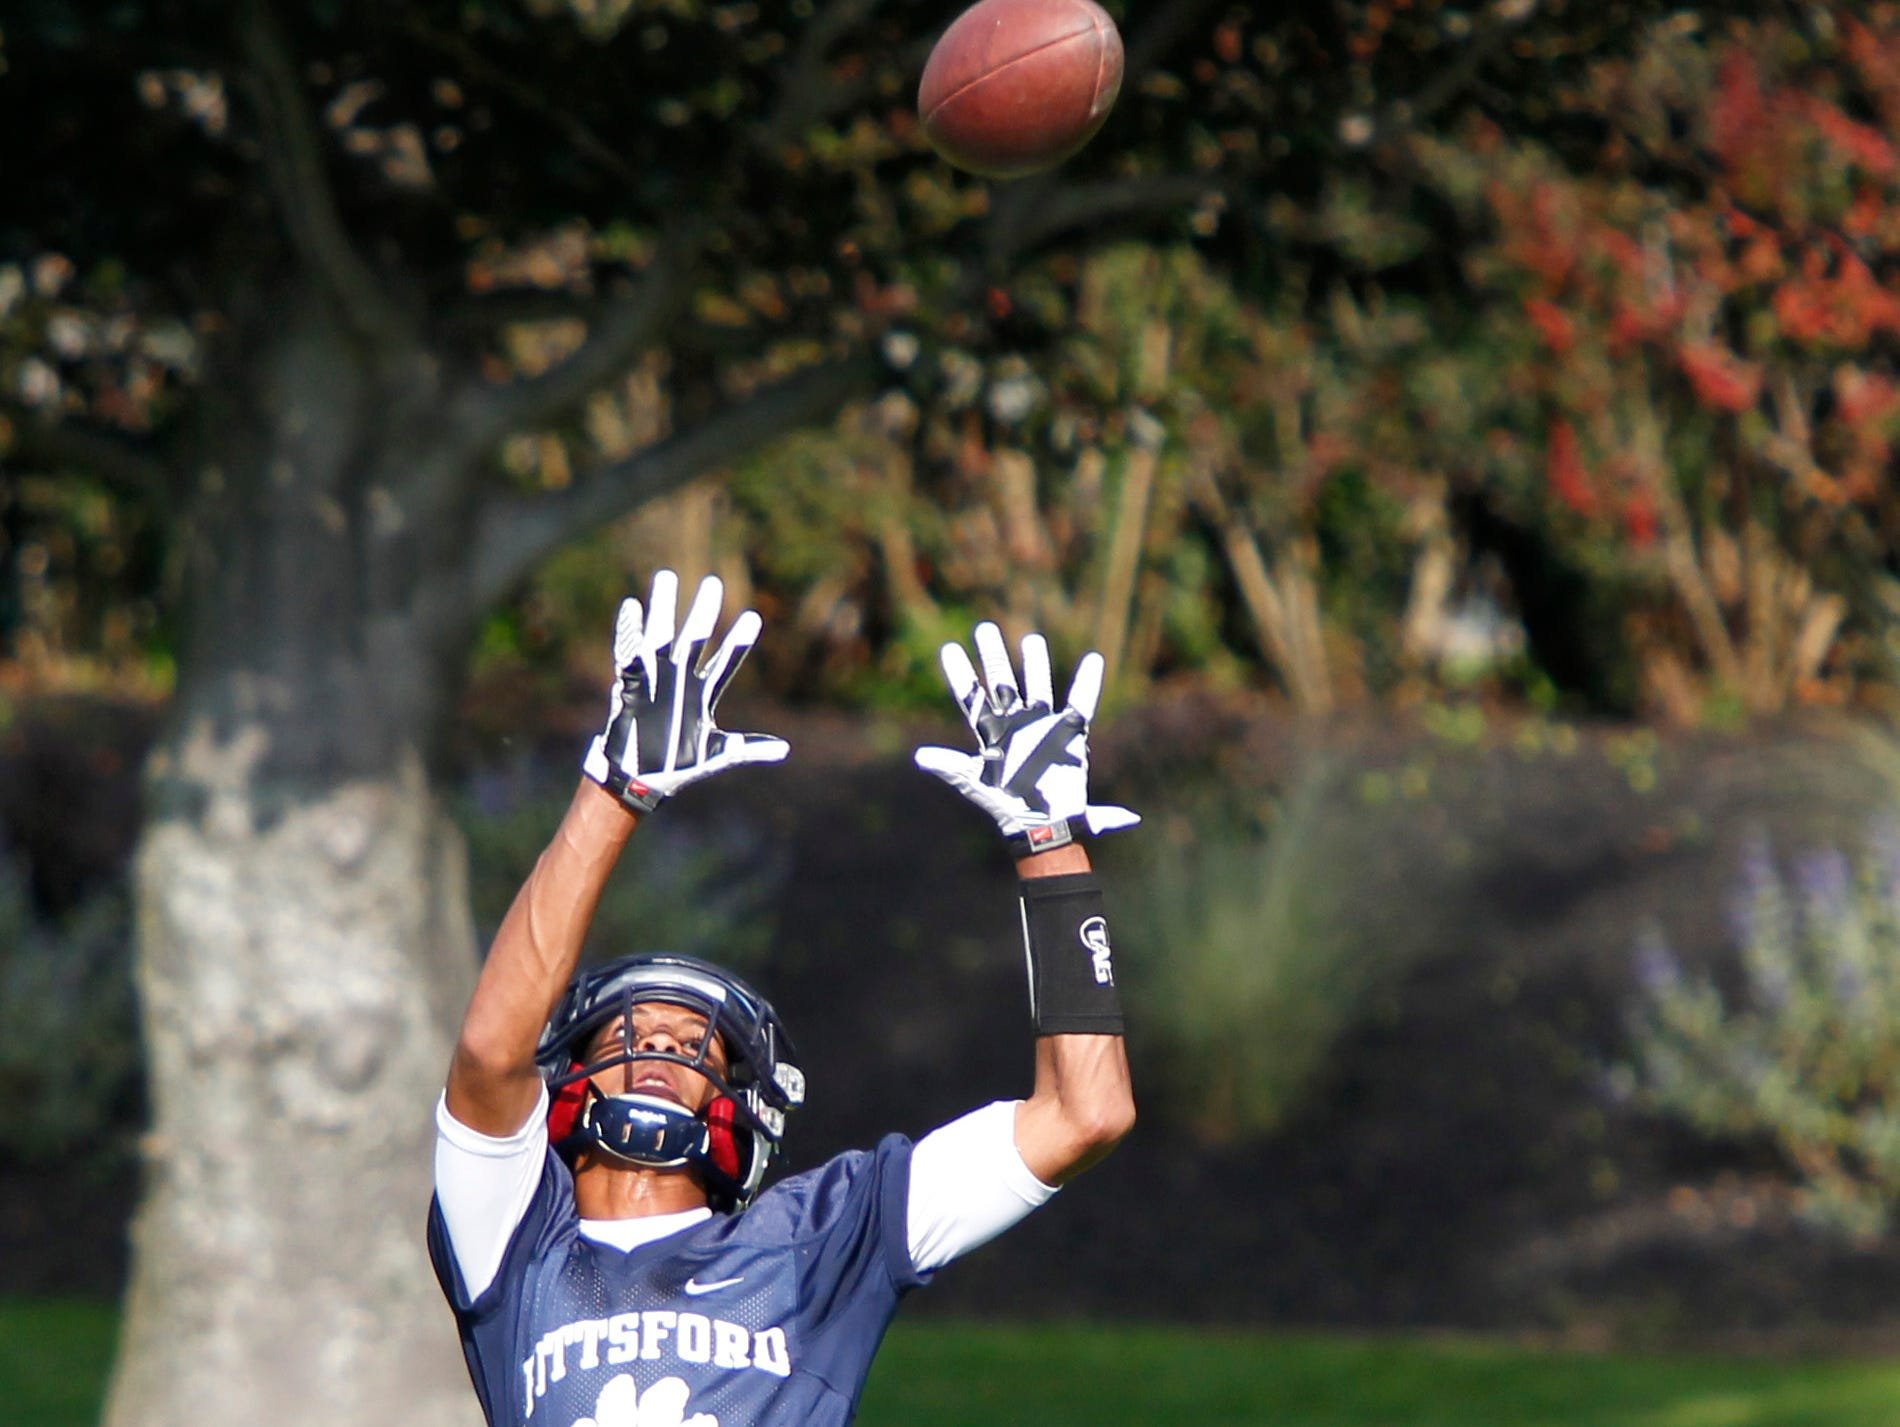 Pittsford receiver Zuril Hendricks goes all out to pull in a long throw down the sidelines during the team's practice.